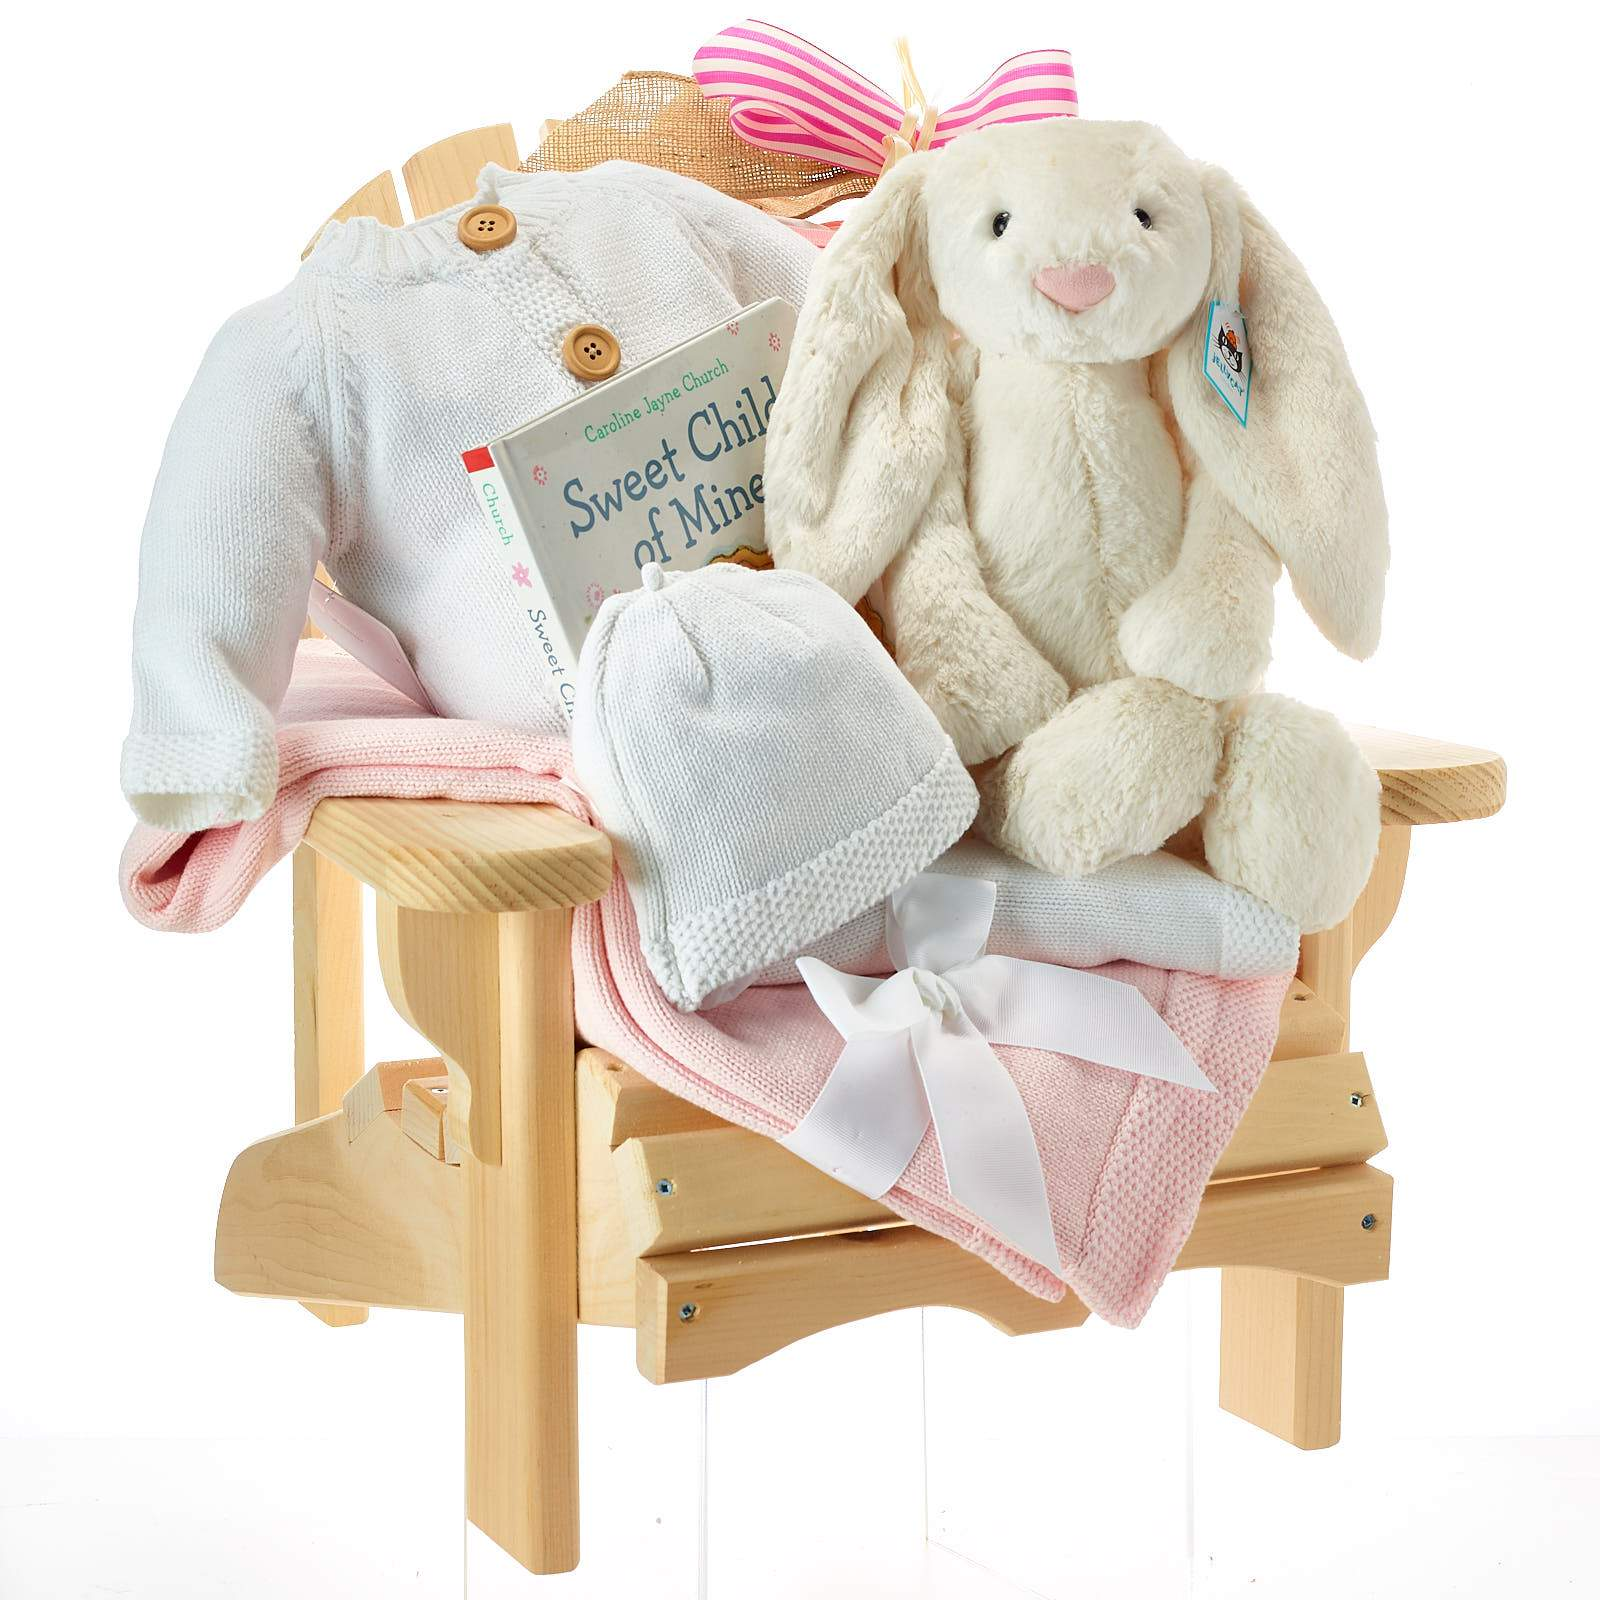 High End Baby Gifts Canada